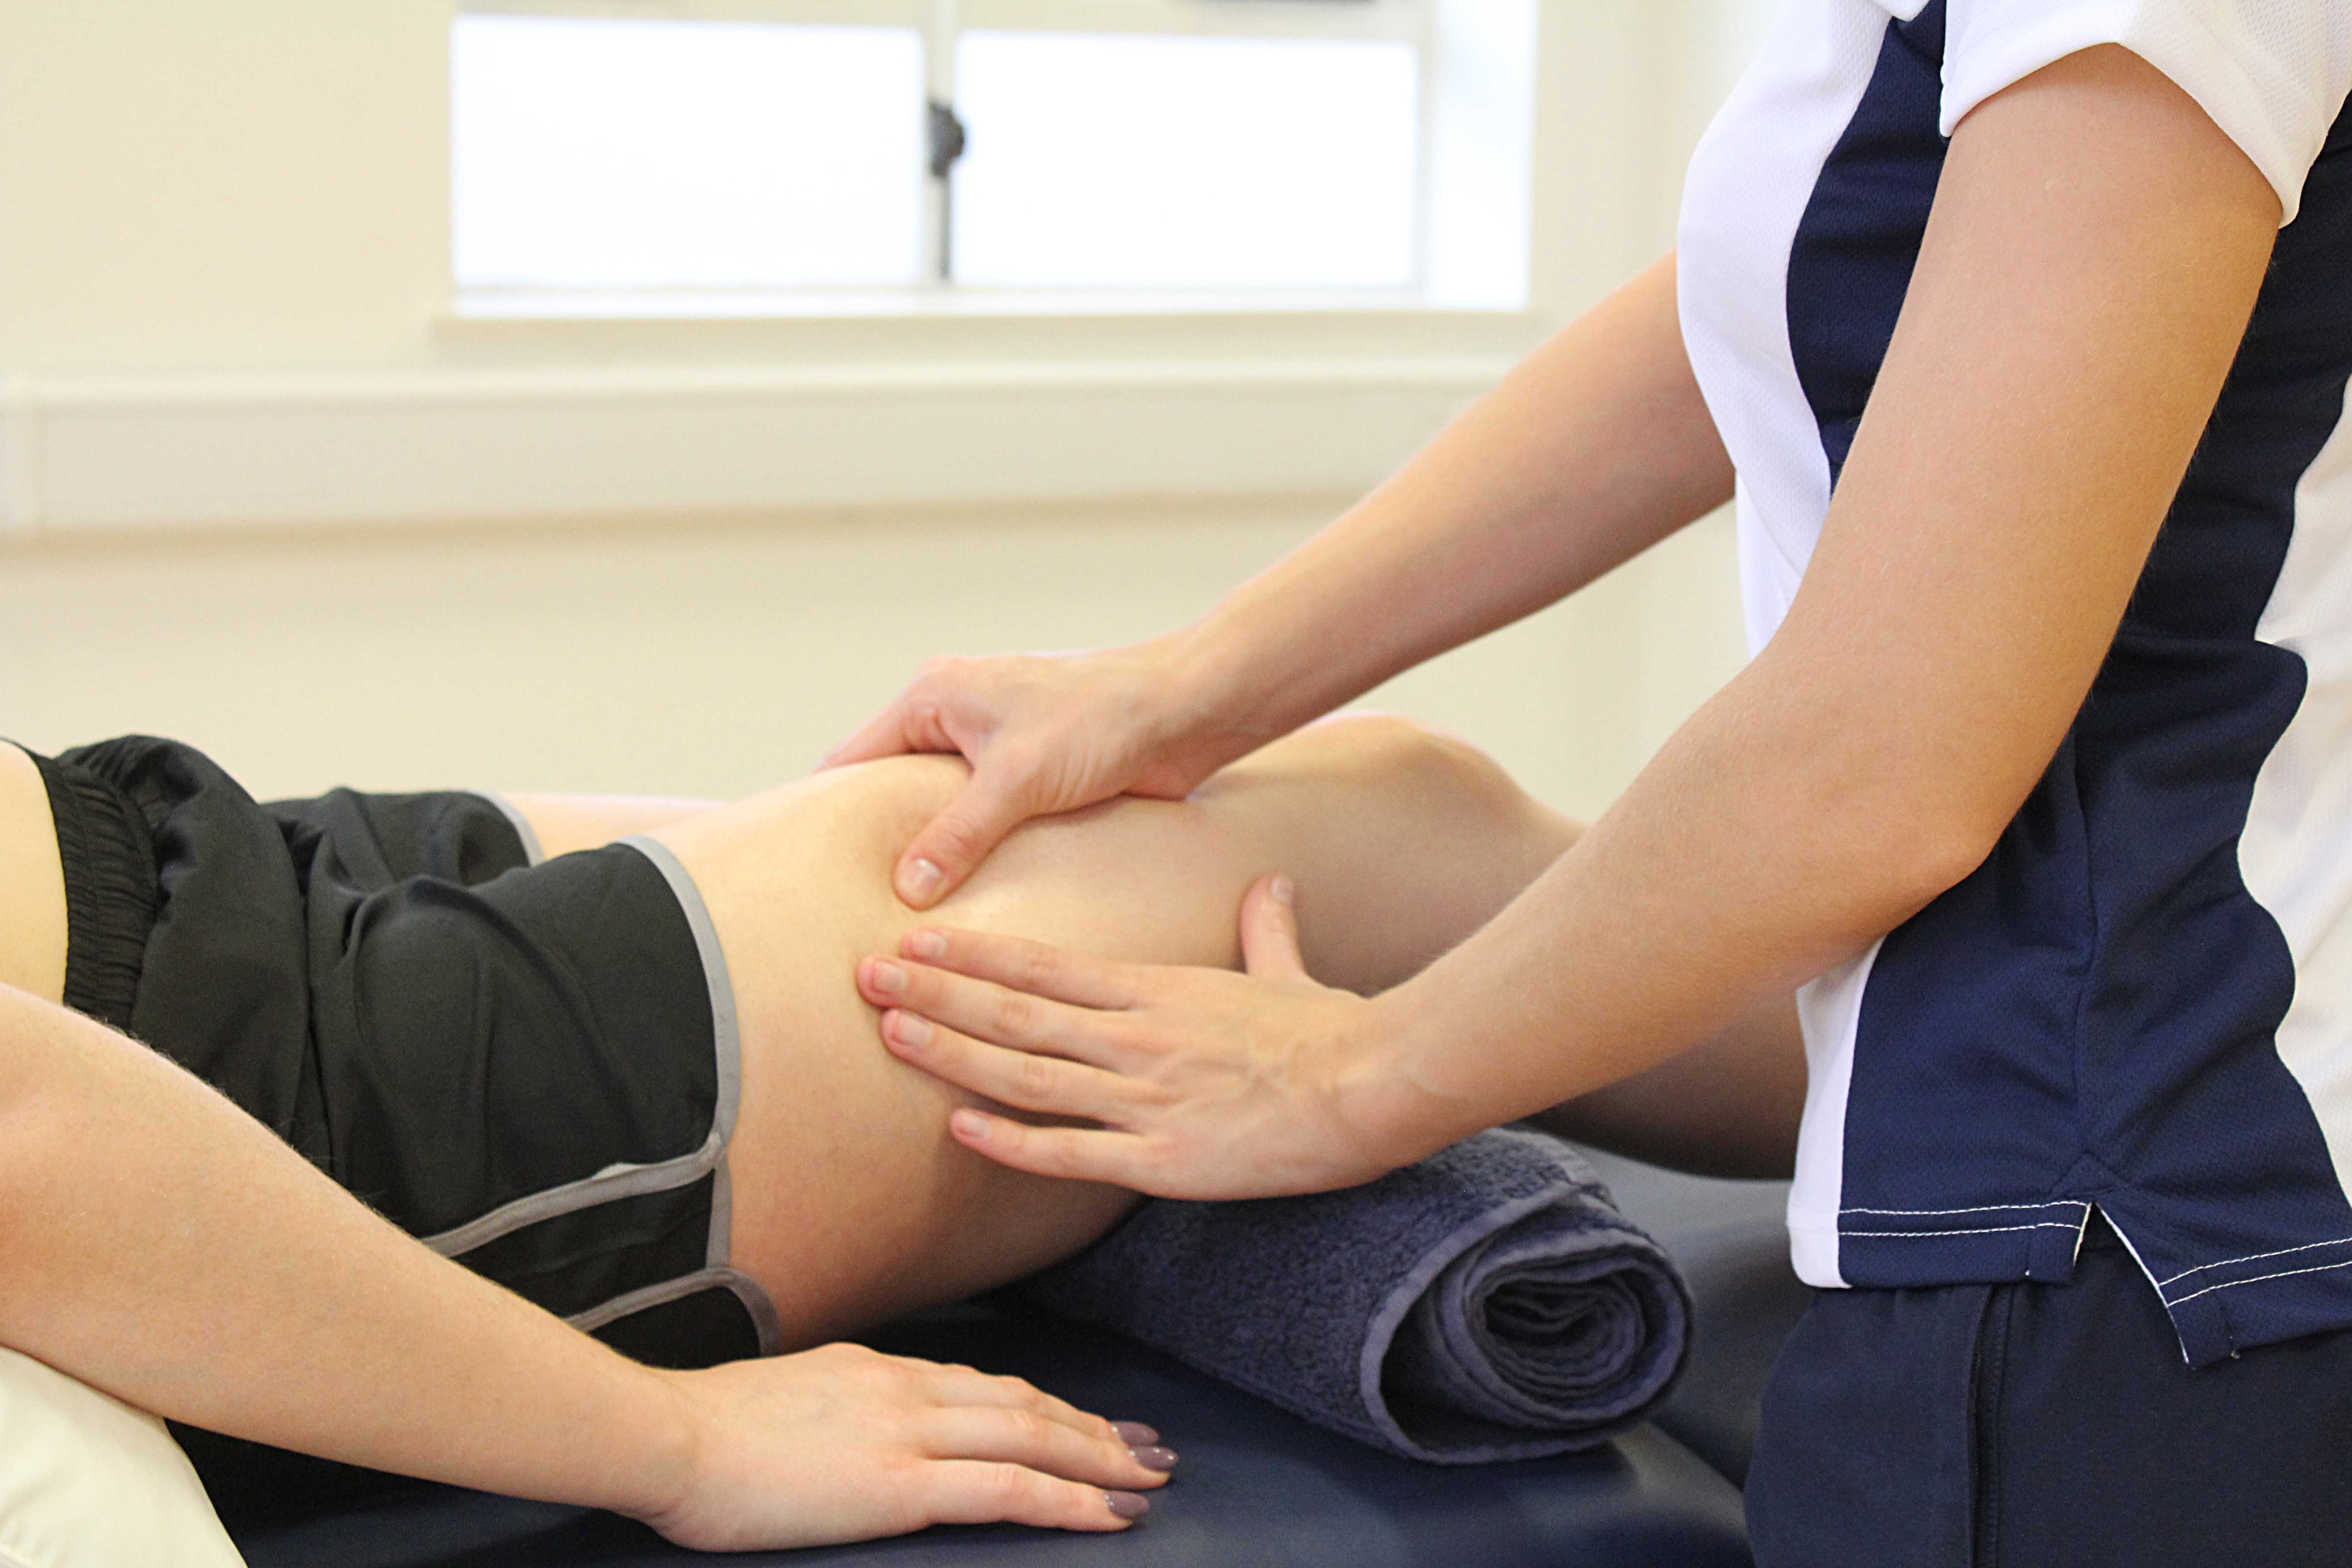 Rolling soft tissue massage of the quadriceps muscles